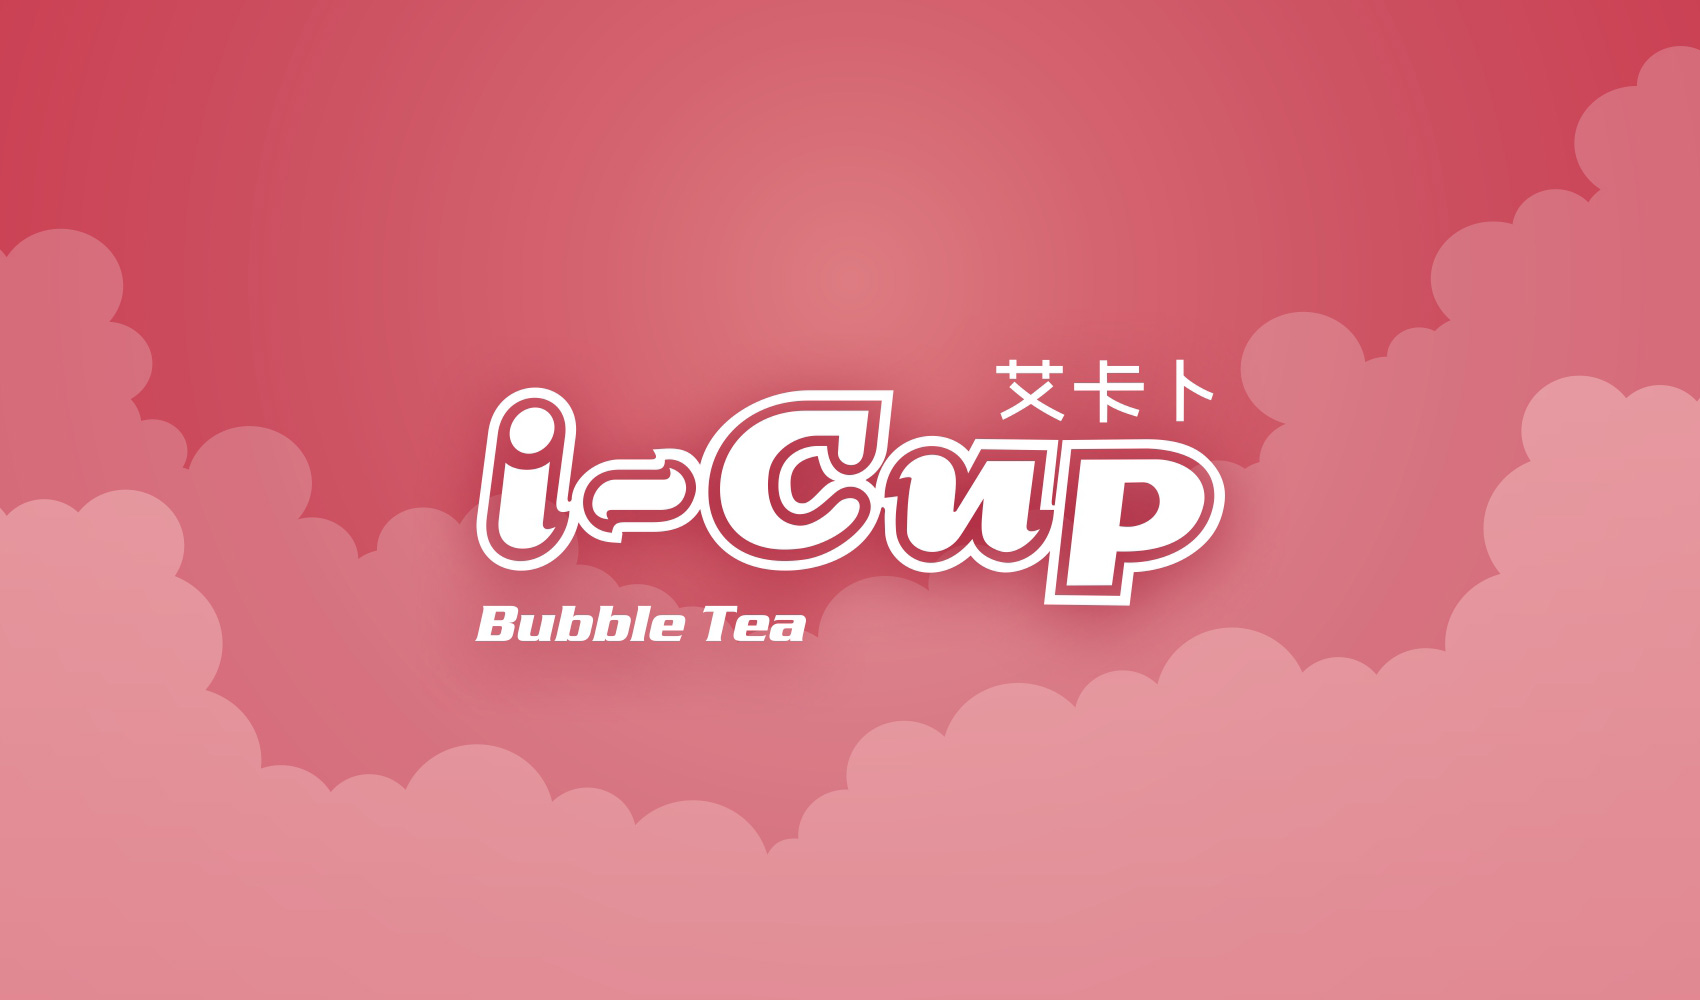 i-Cup Bubble Tea